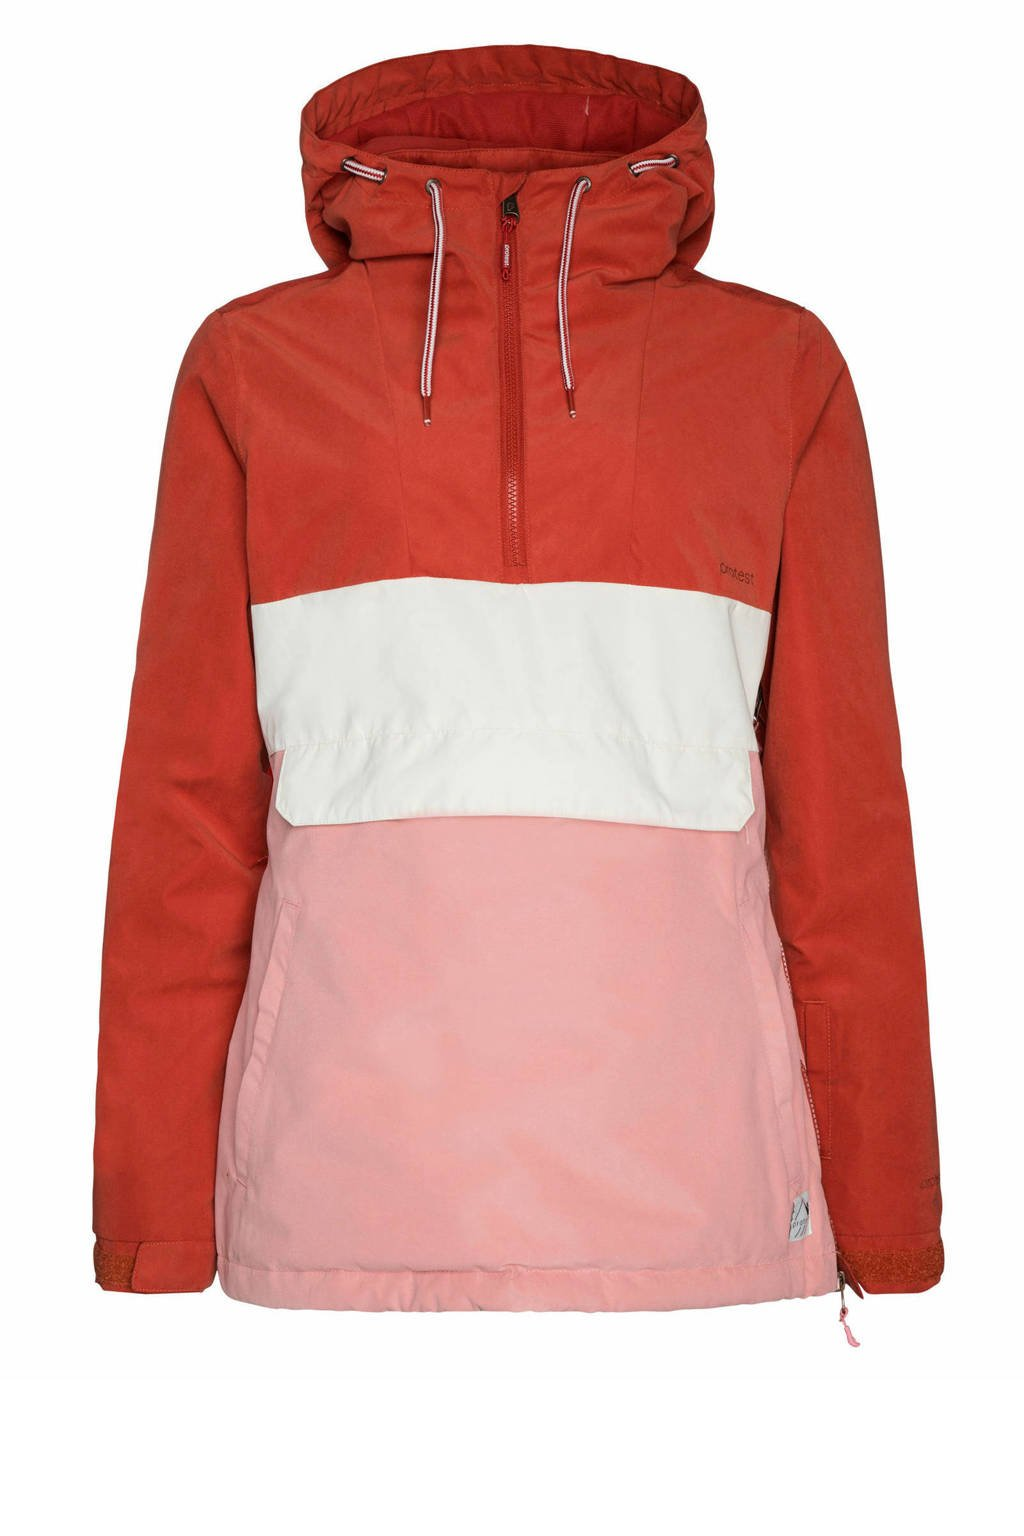 Protest outdoor anorak Ann roze/rood, Rocky